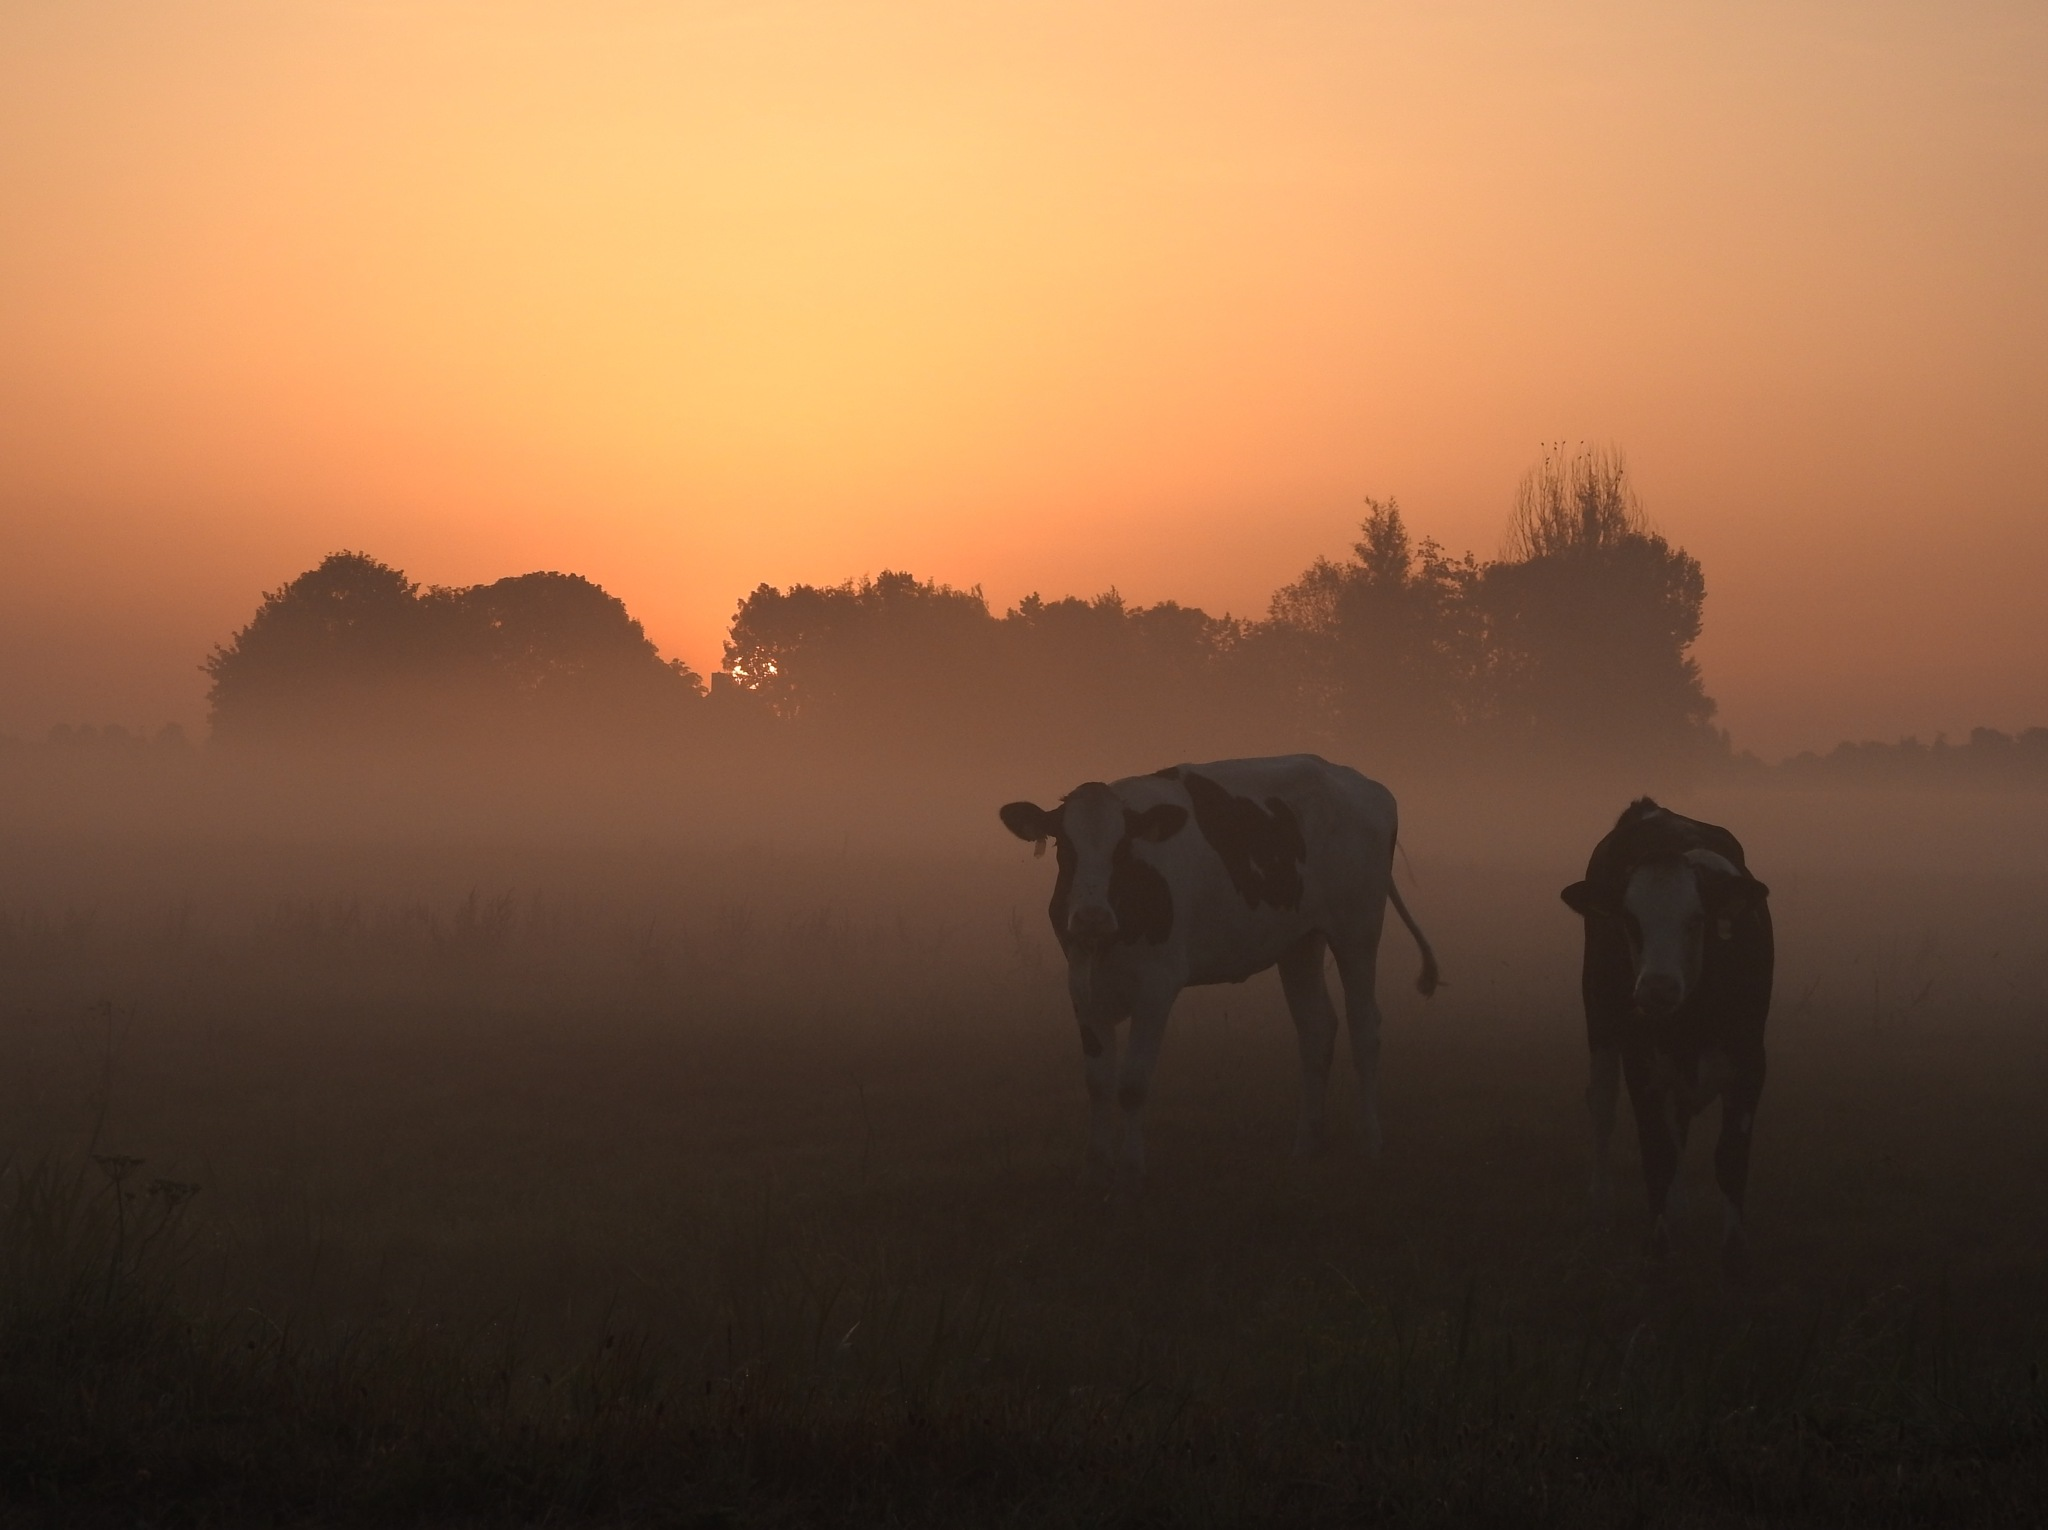 Curious cows in early morning haze... by Fedor de Vries